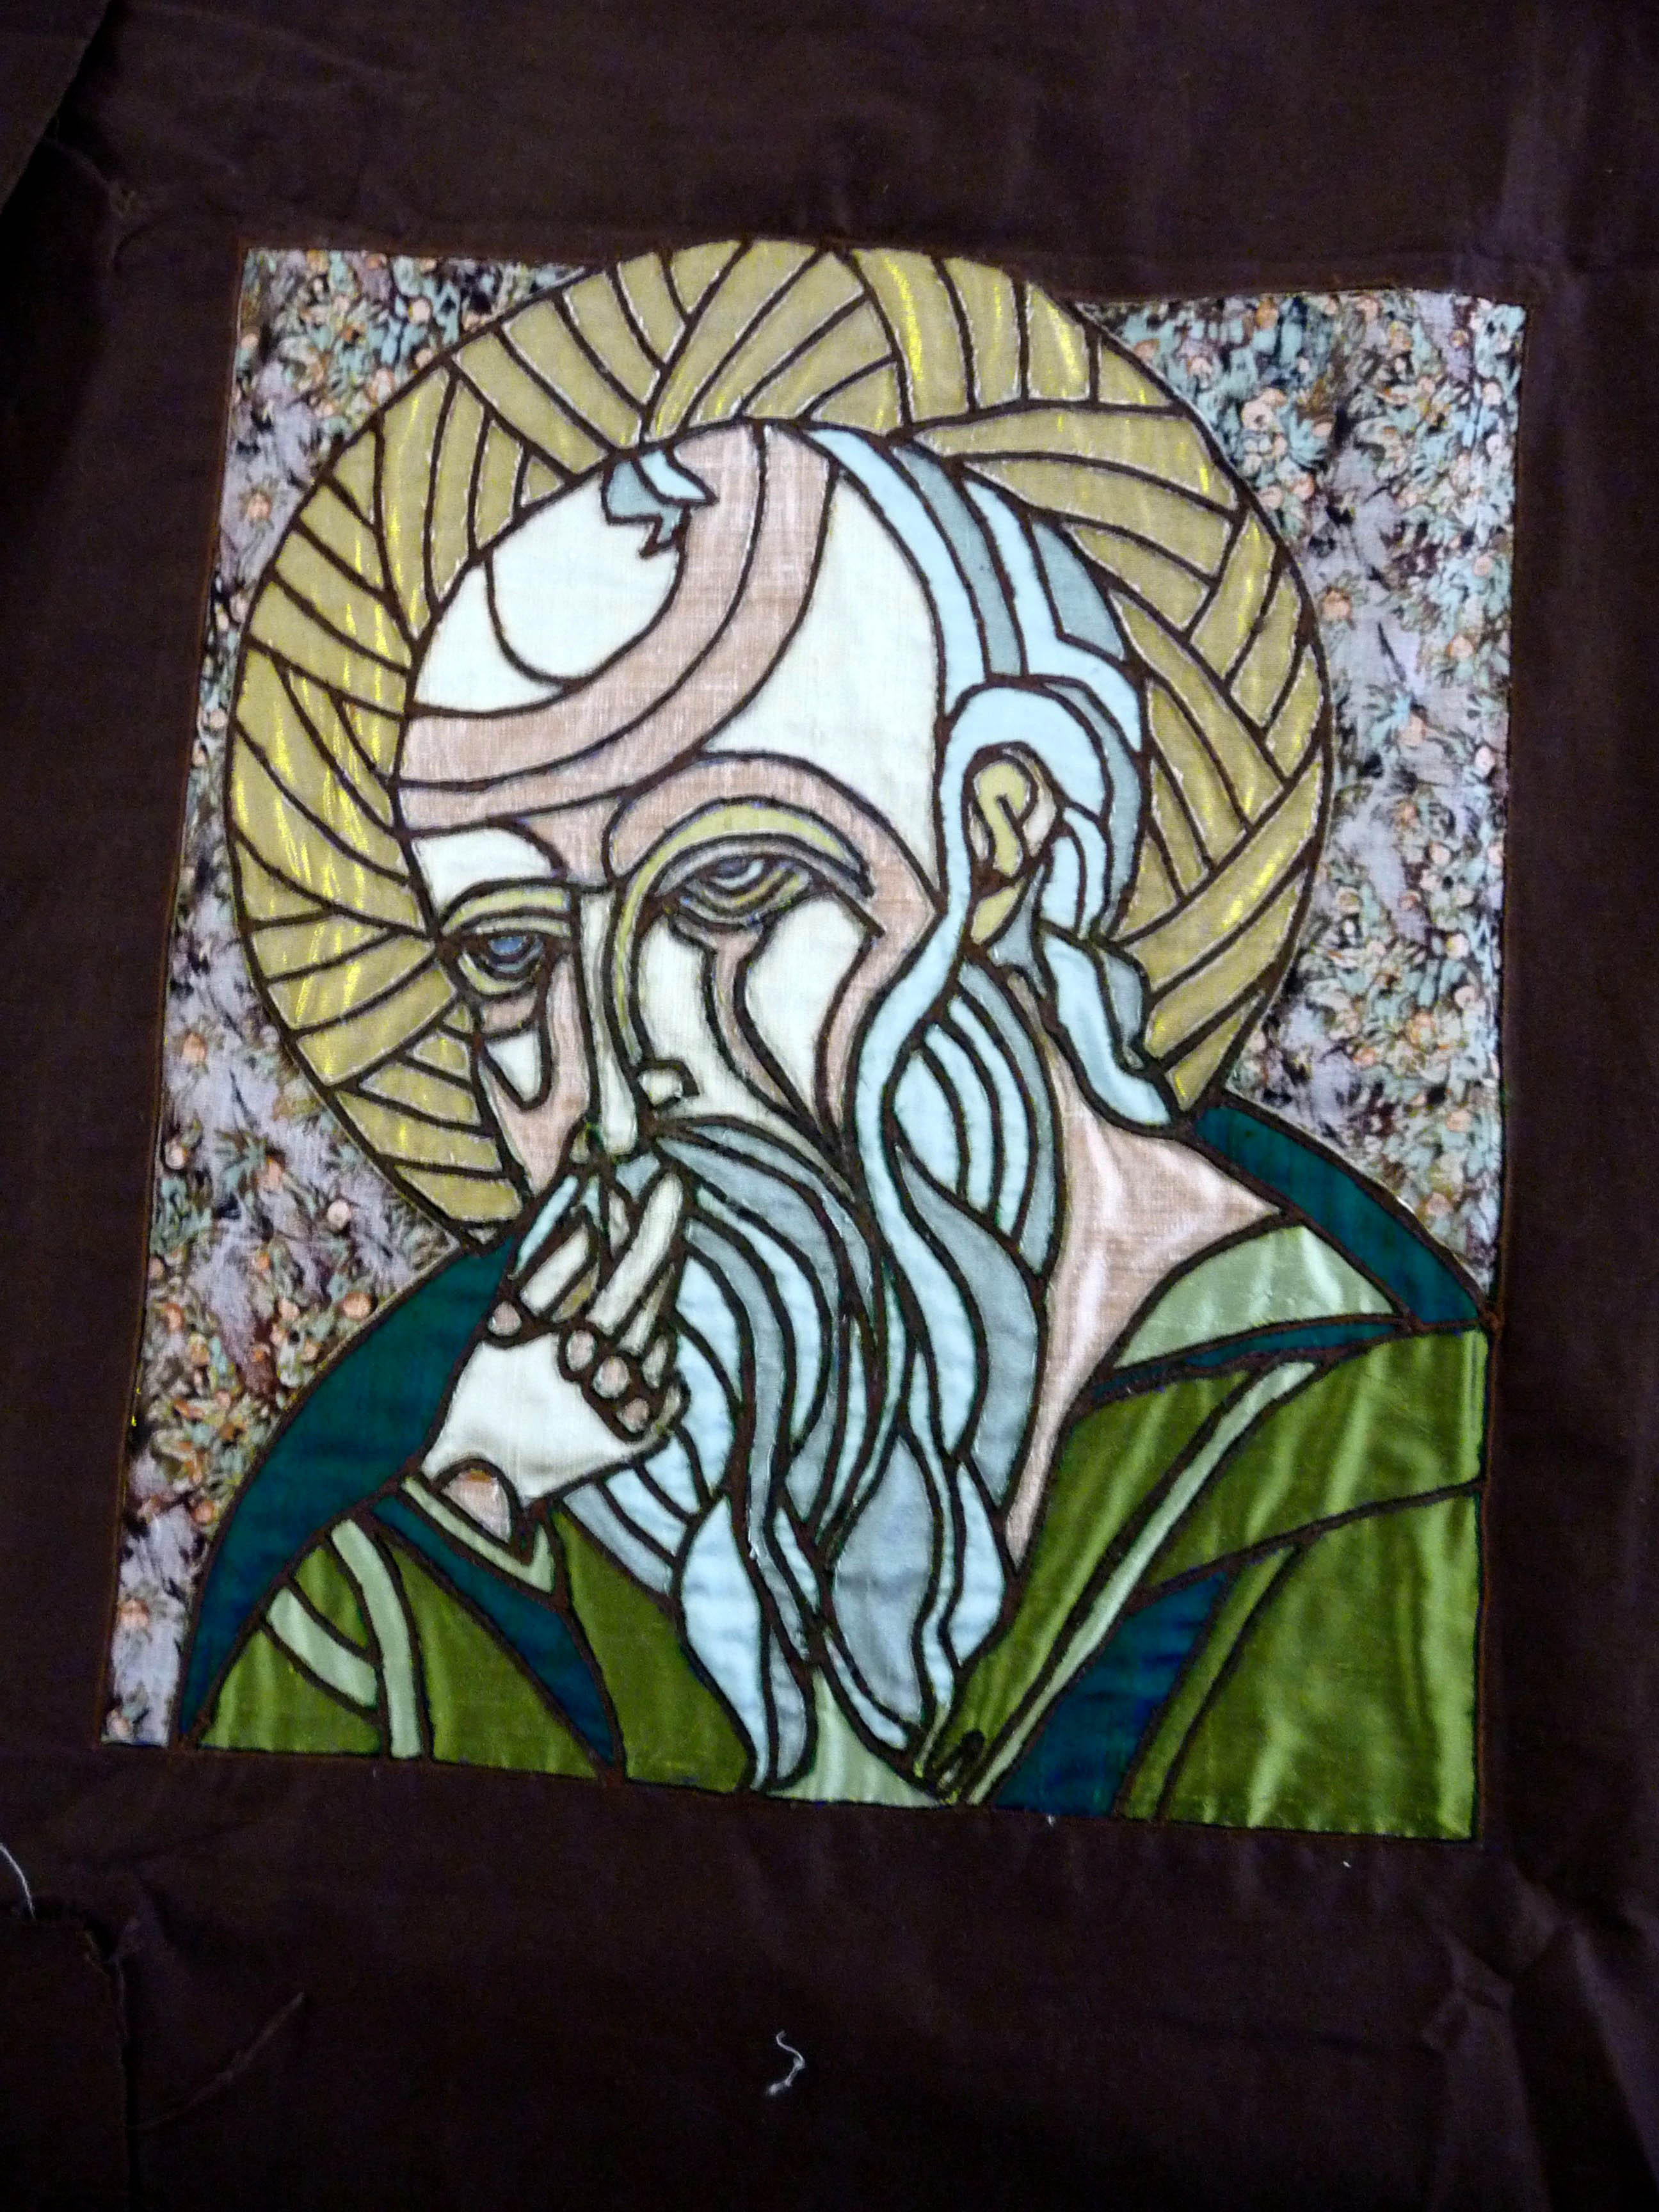 ST. JOHN THE SILENT, revers applique by Hilary McCormack